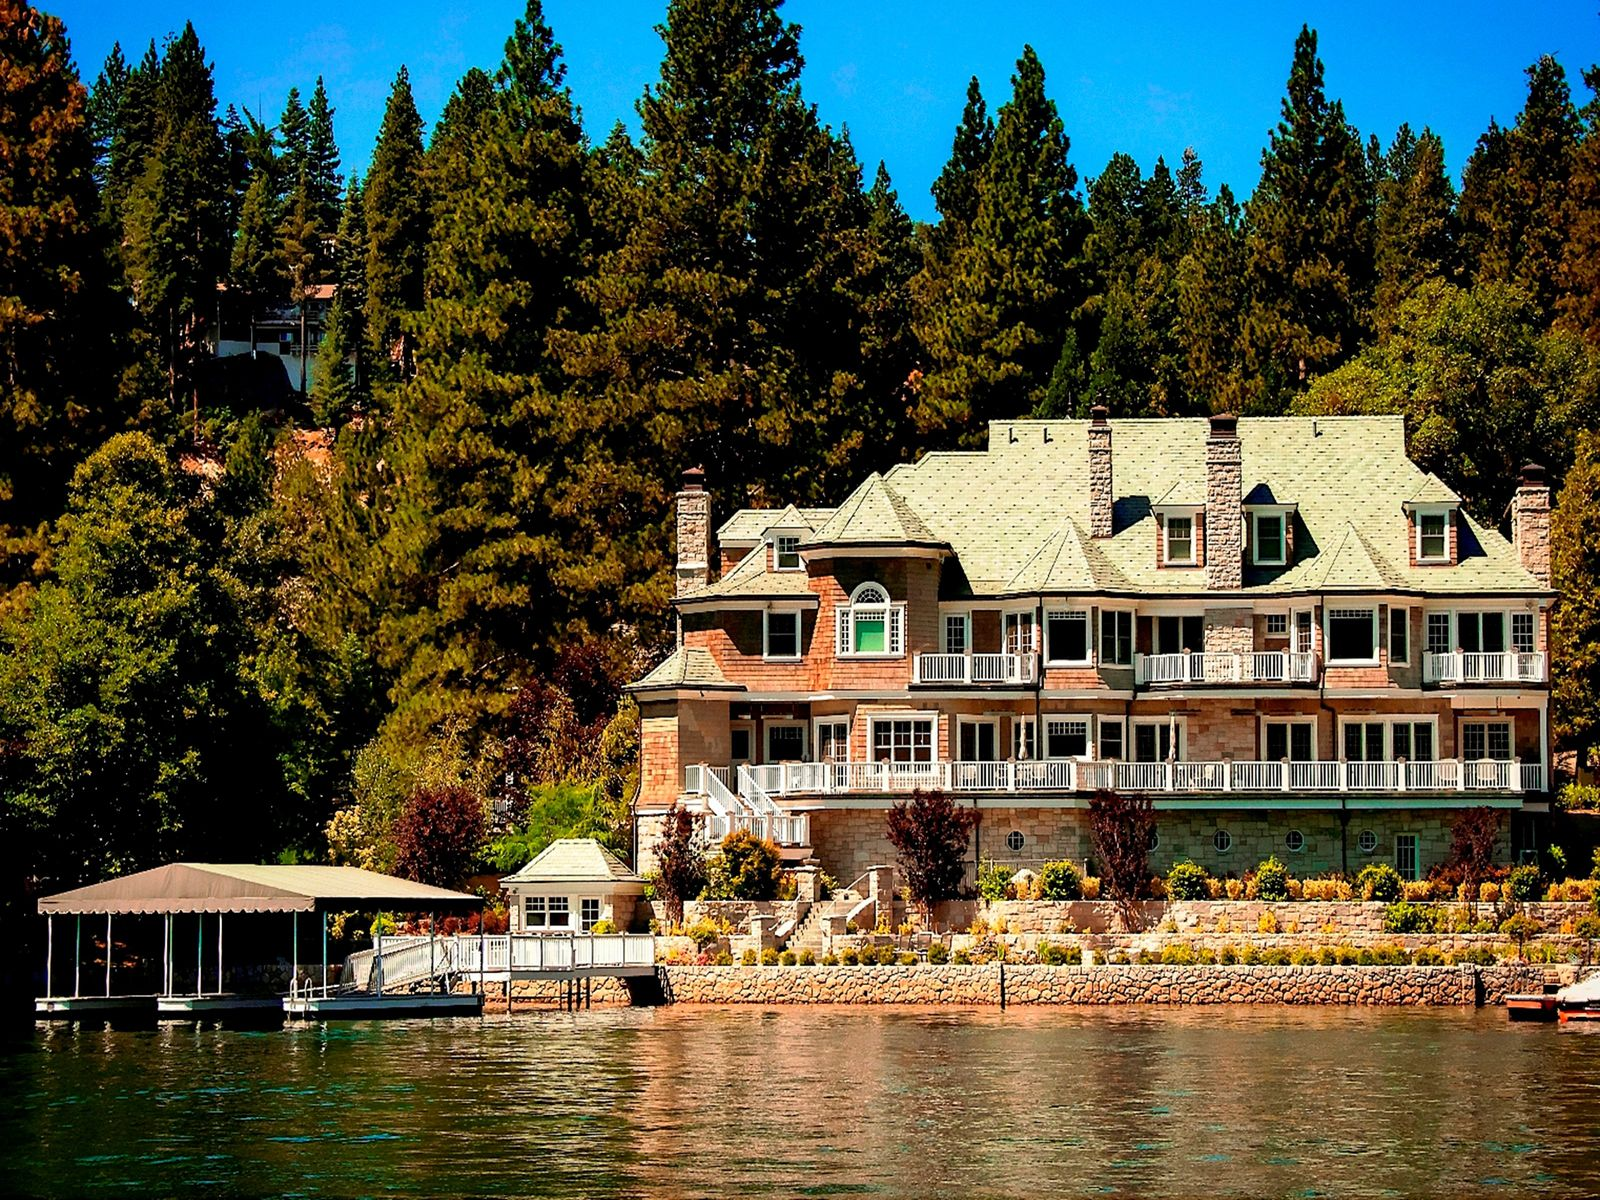 Lake Arrowhead Trophy Estate, Lake Arrowhead CA Single Family Home - Los Angeles Real Estate